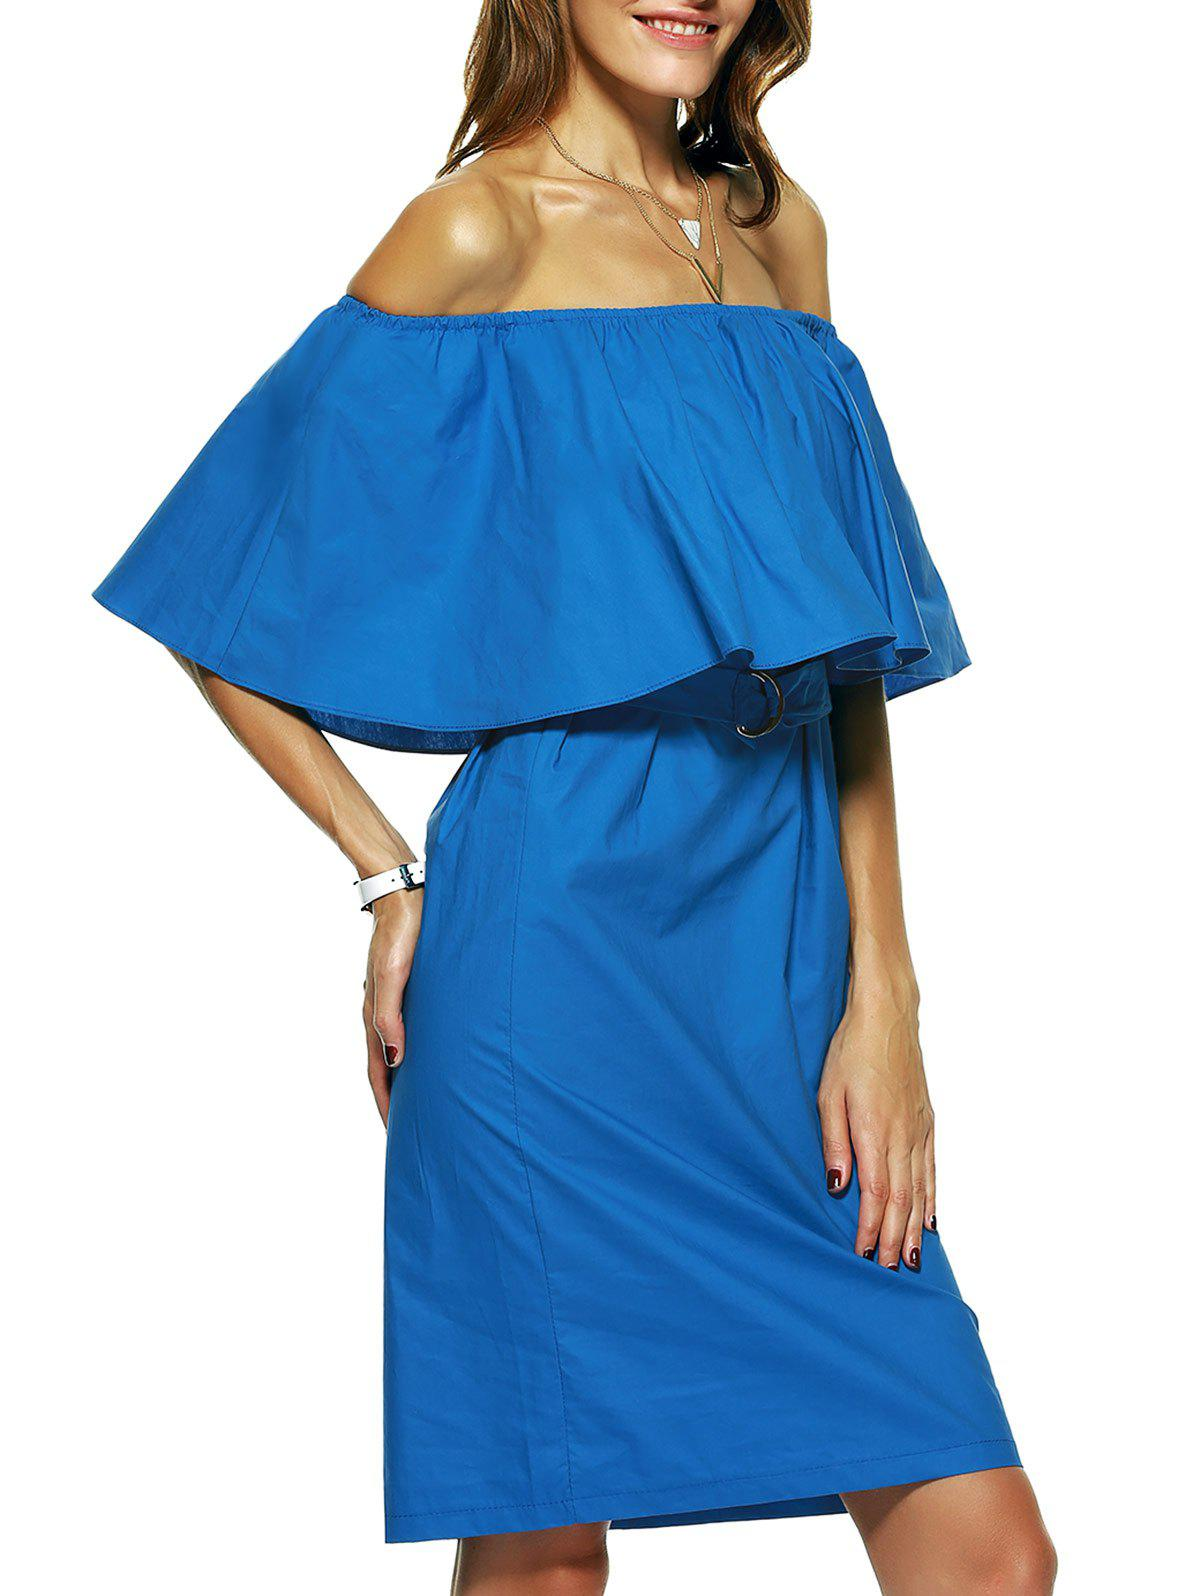 Backless Overlay Tie Belt Dress - BLUE XL